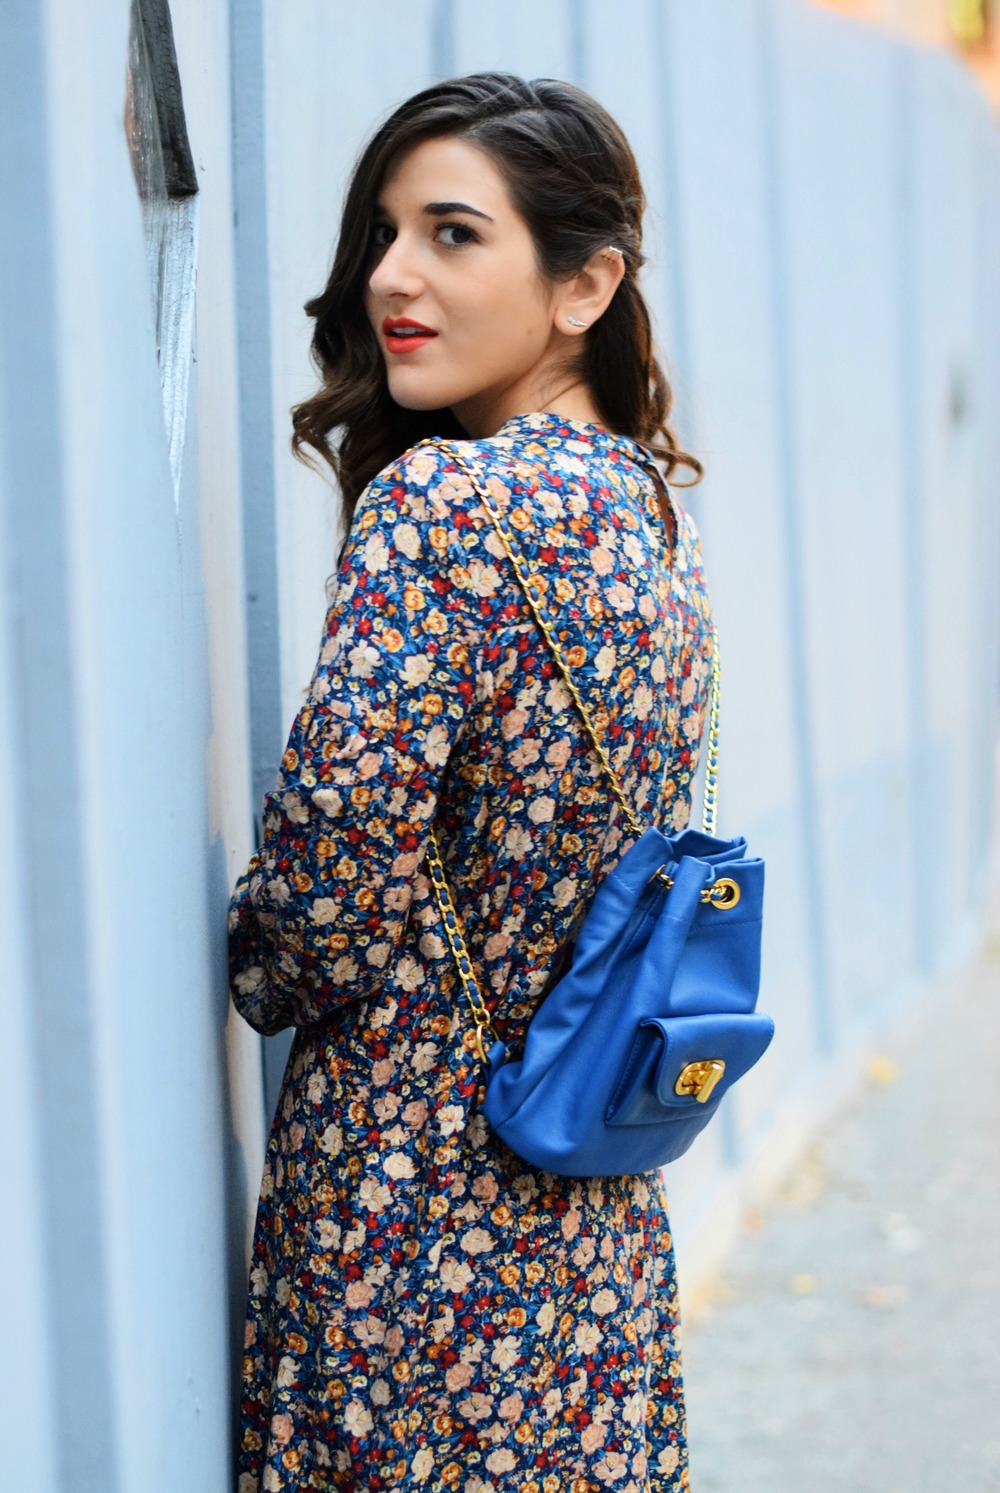 Floral Dress Blue Leather Backpack Louboutins & Love Fashion Blog Esther Santer NYC Street Style Blogger Black Tights Fringe Preta Ivanka Trump Booties Hair Girl Women Shopping Inspo Inspiration Model Photoshoot New York City Winter OOTD Outfit Trendy.jpg